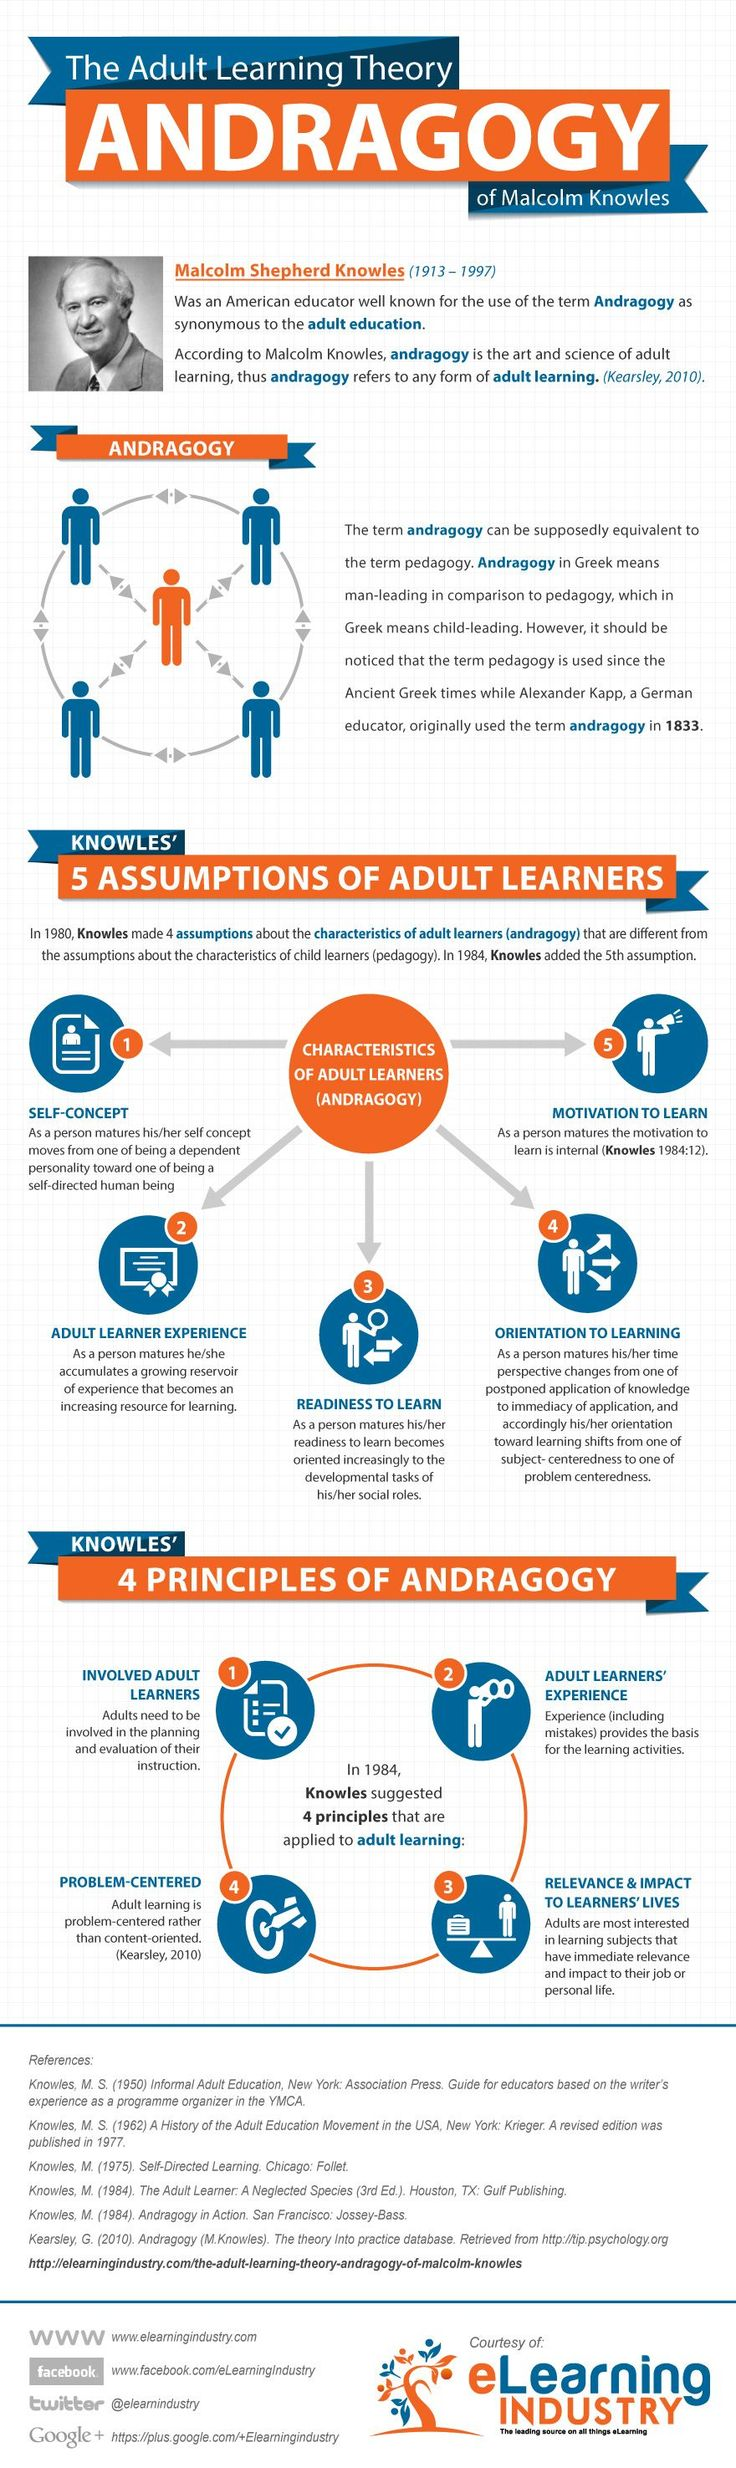 a comparison of the characteristics of andragogy and pedagogy Moving from pedagogy to andragogy  a comparison of andragogy and student-centered education  , characteristics of learning experience, management of learning .